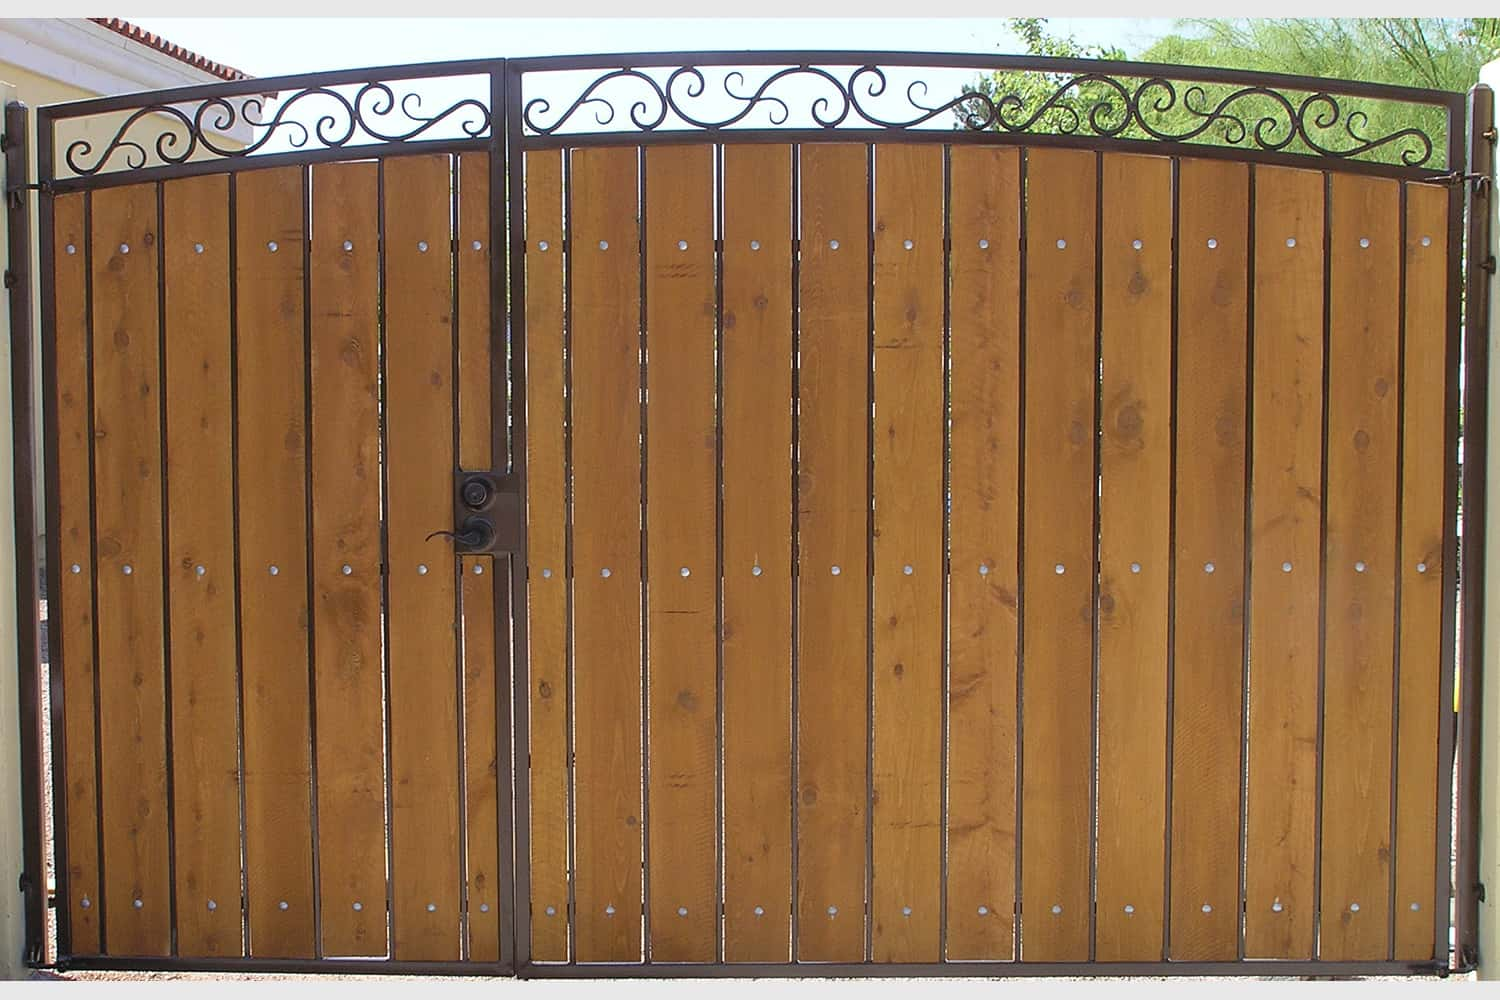 Decorative Arched RV Gate with Stained and Sealed Wood